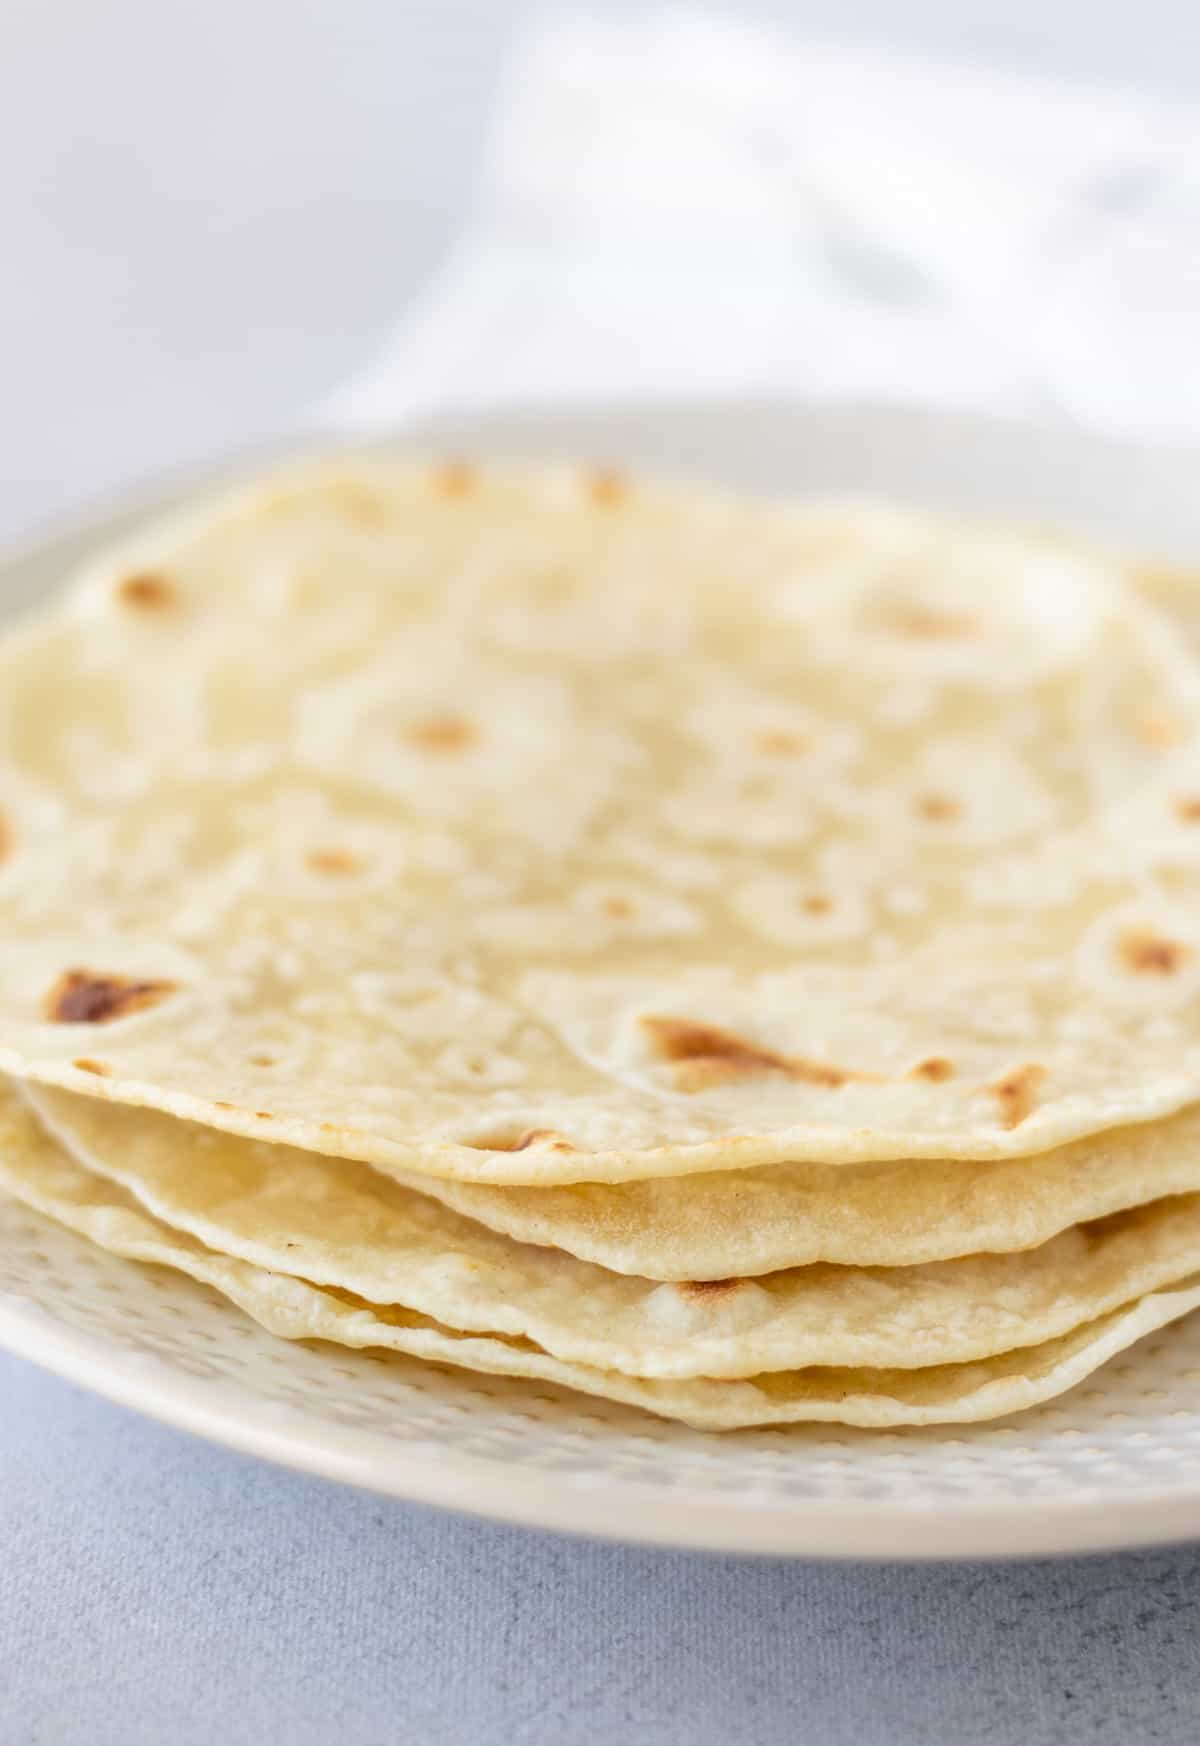 Stack of tortillas on a white plate